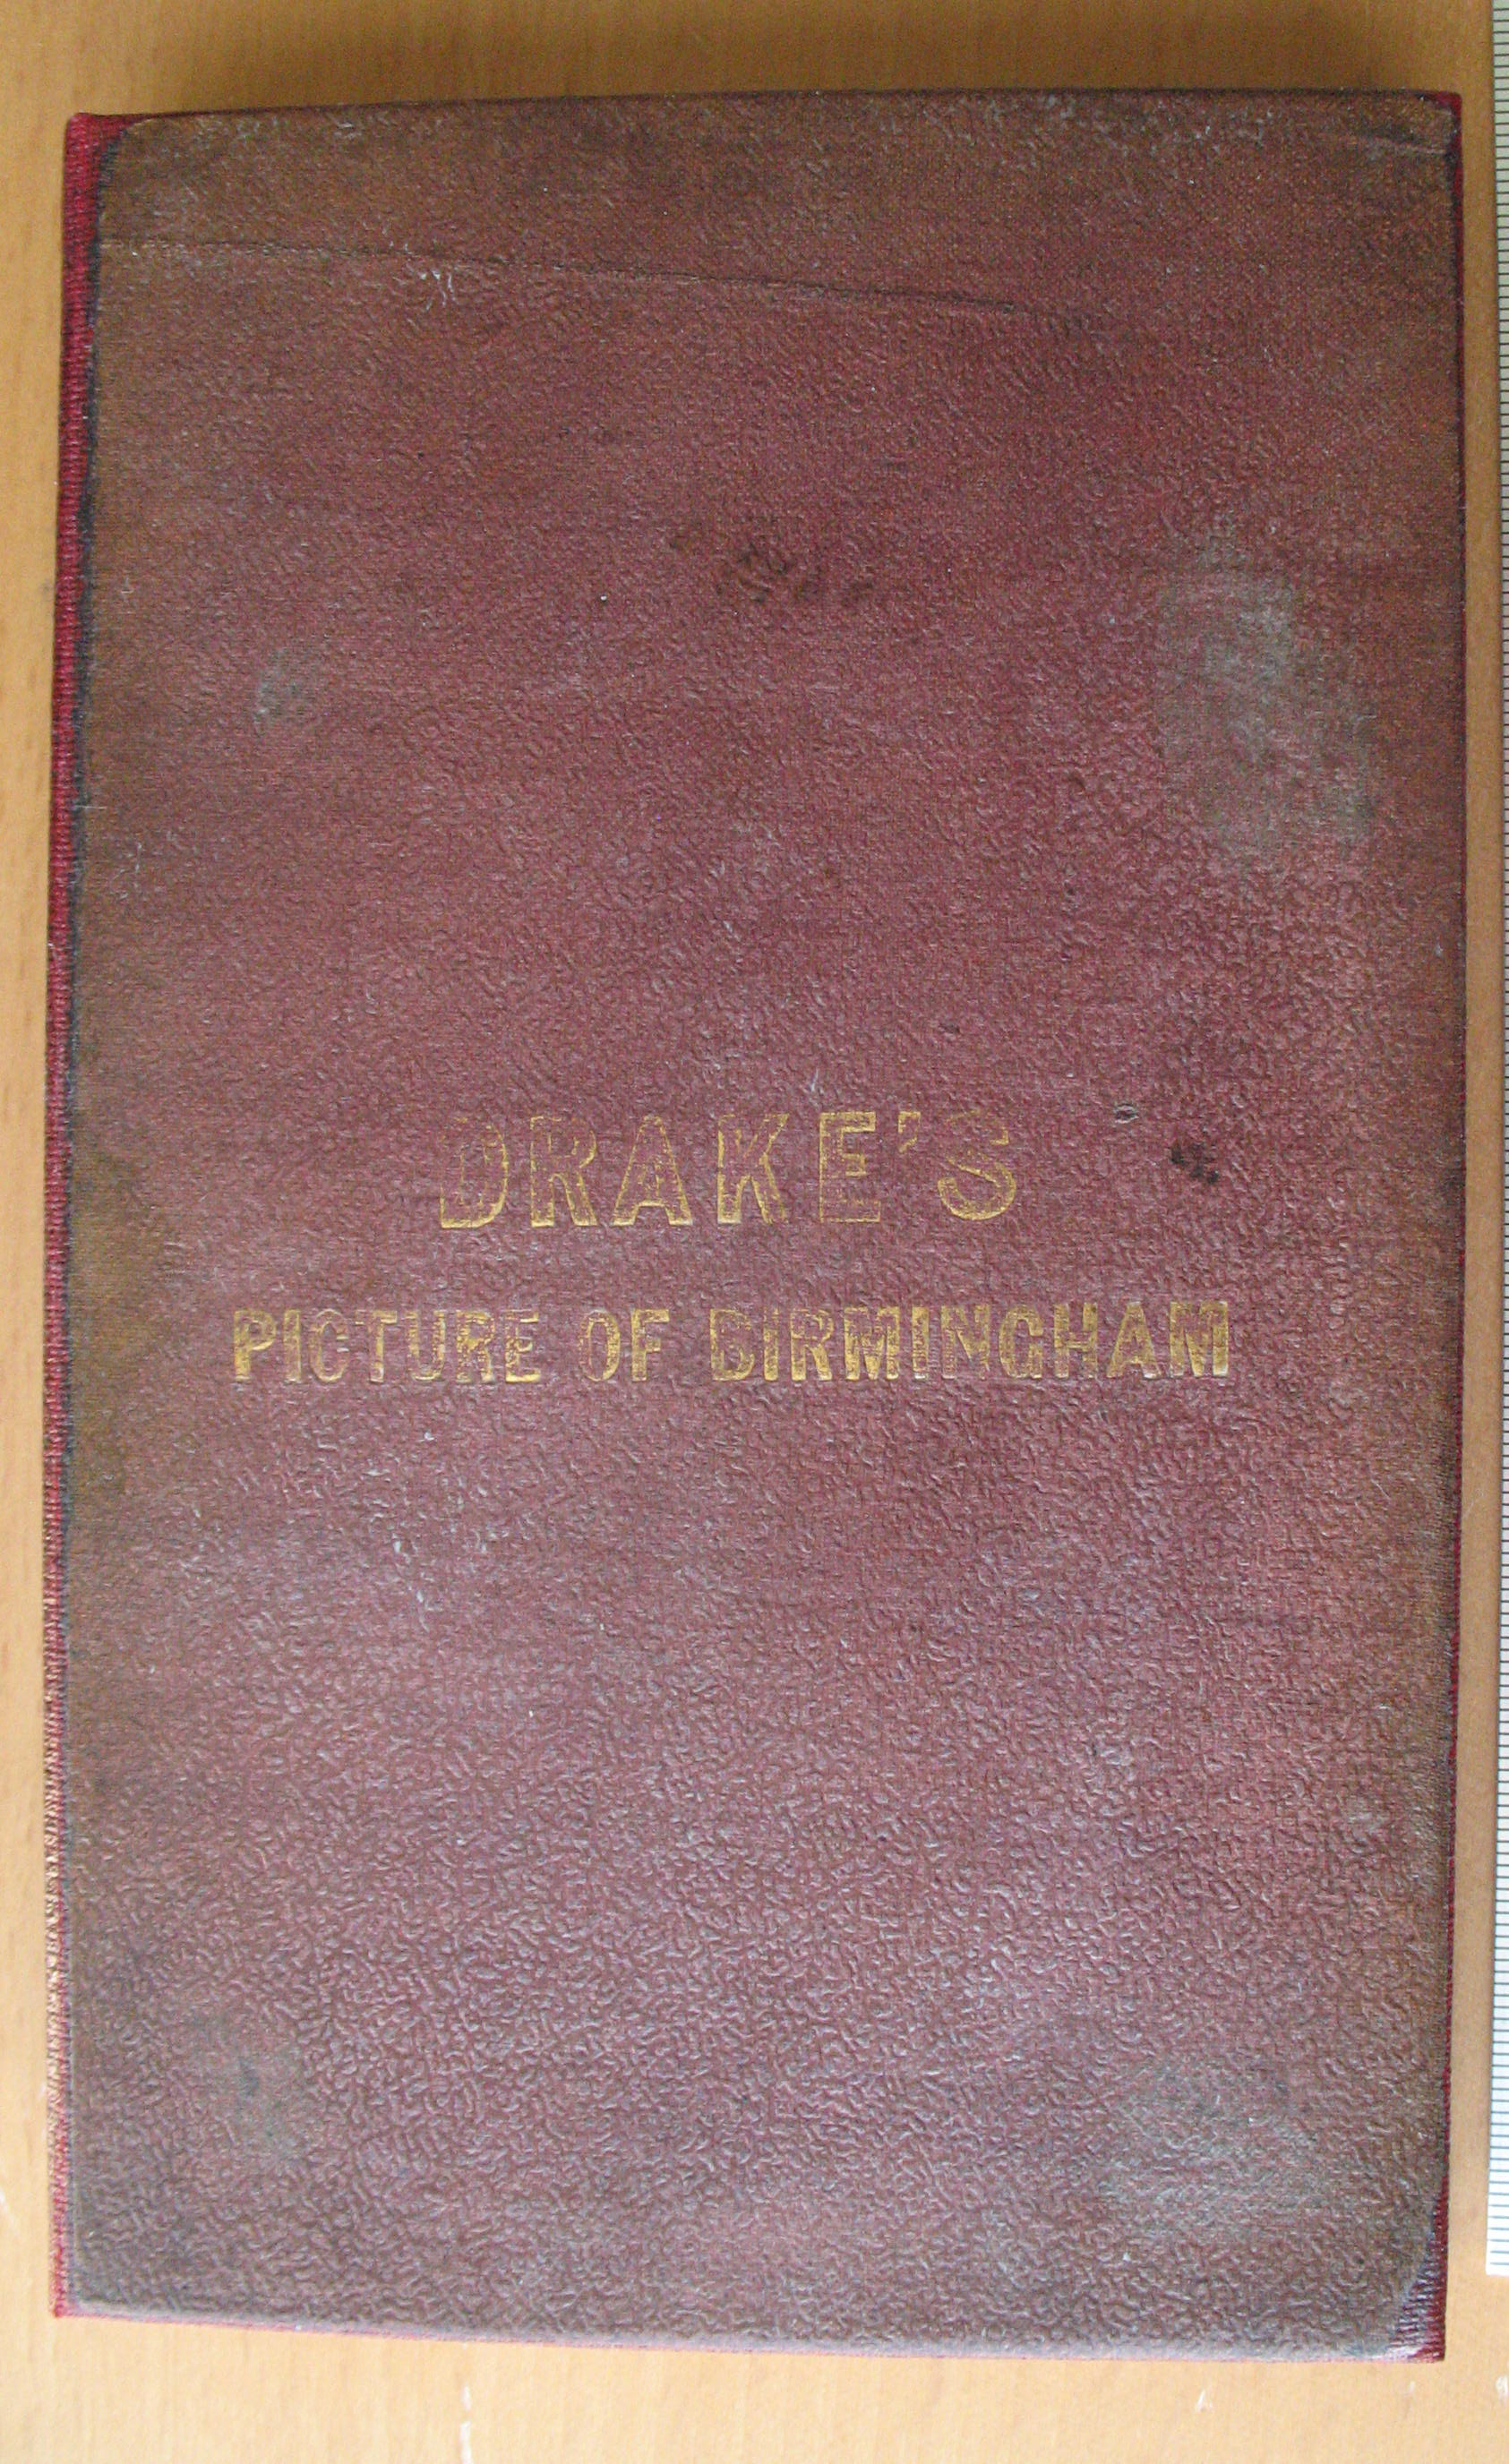 Fig 1 - Cover